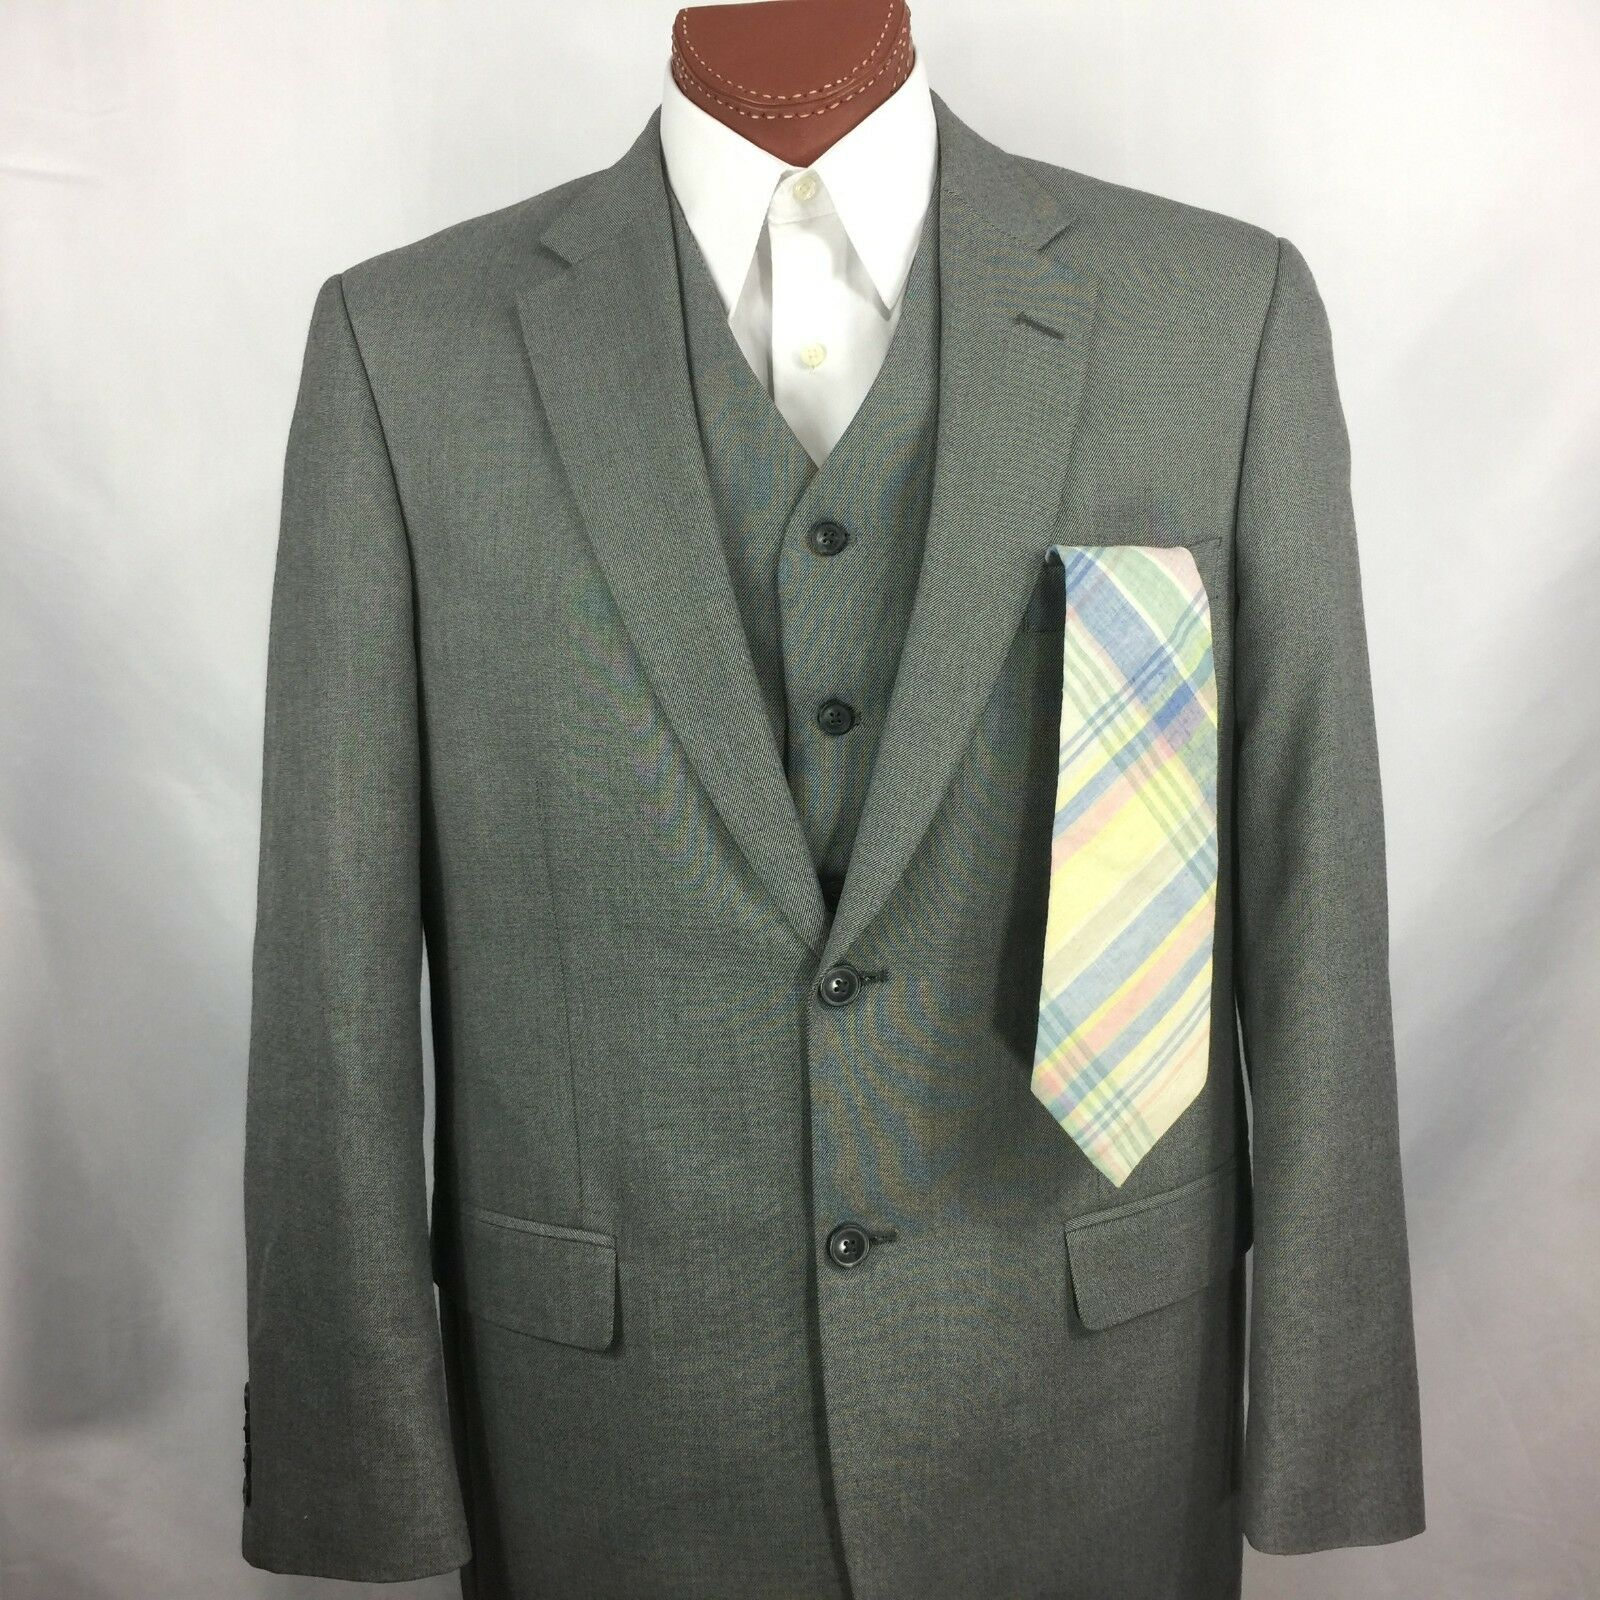 SADDLEBROT - 42L grau 2 Piece Suit Vest & Blazer Sports Coat Vented FREE TIE Men